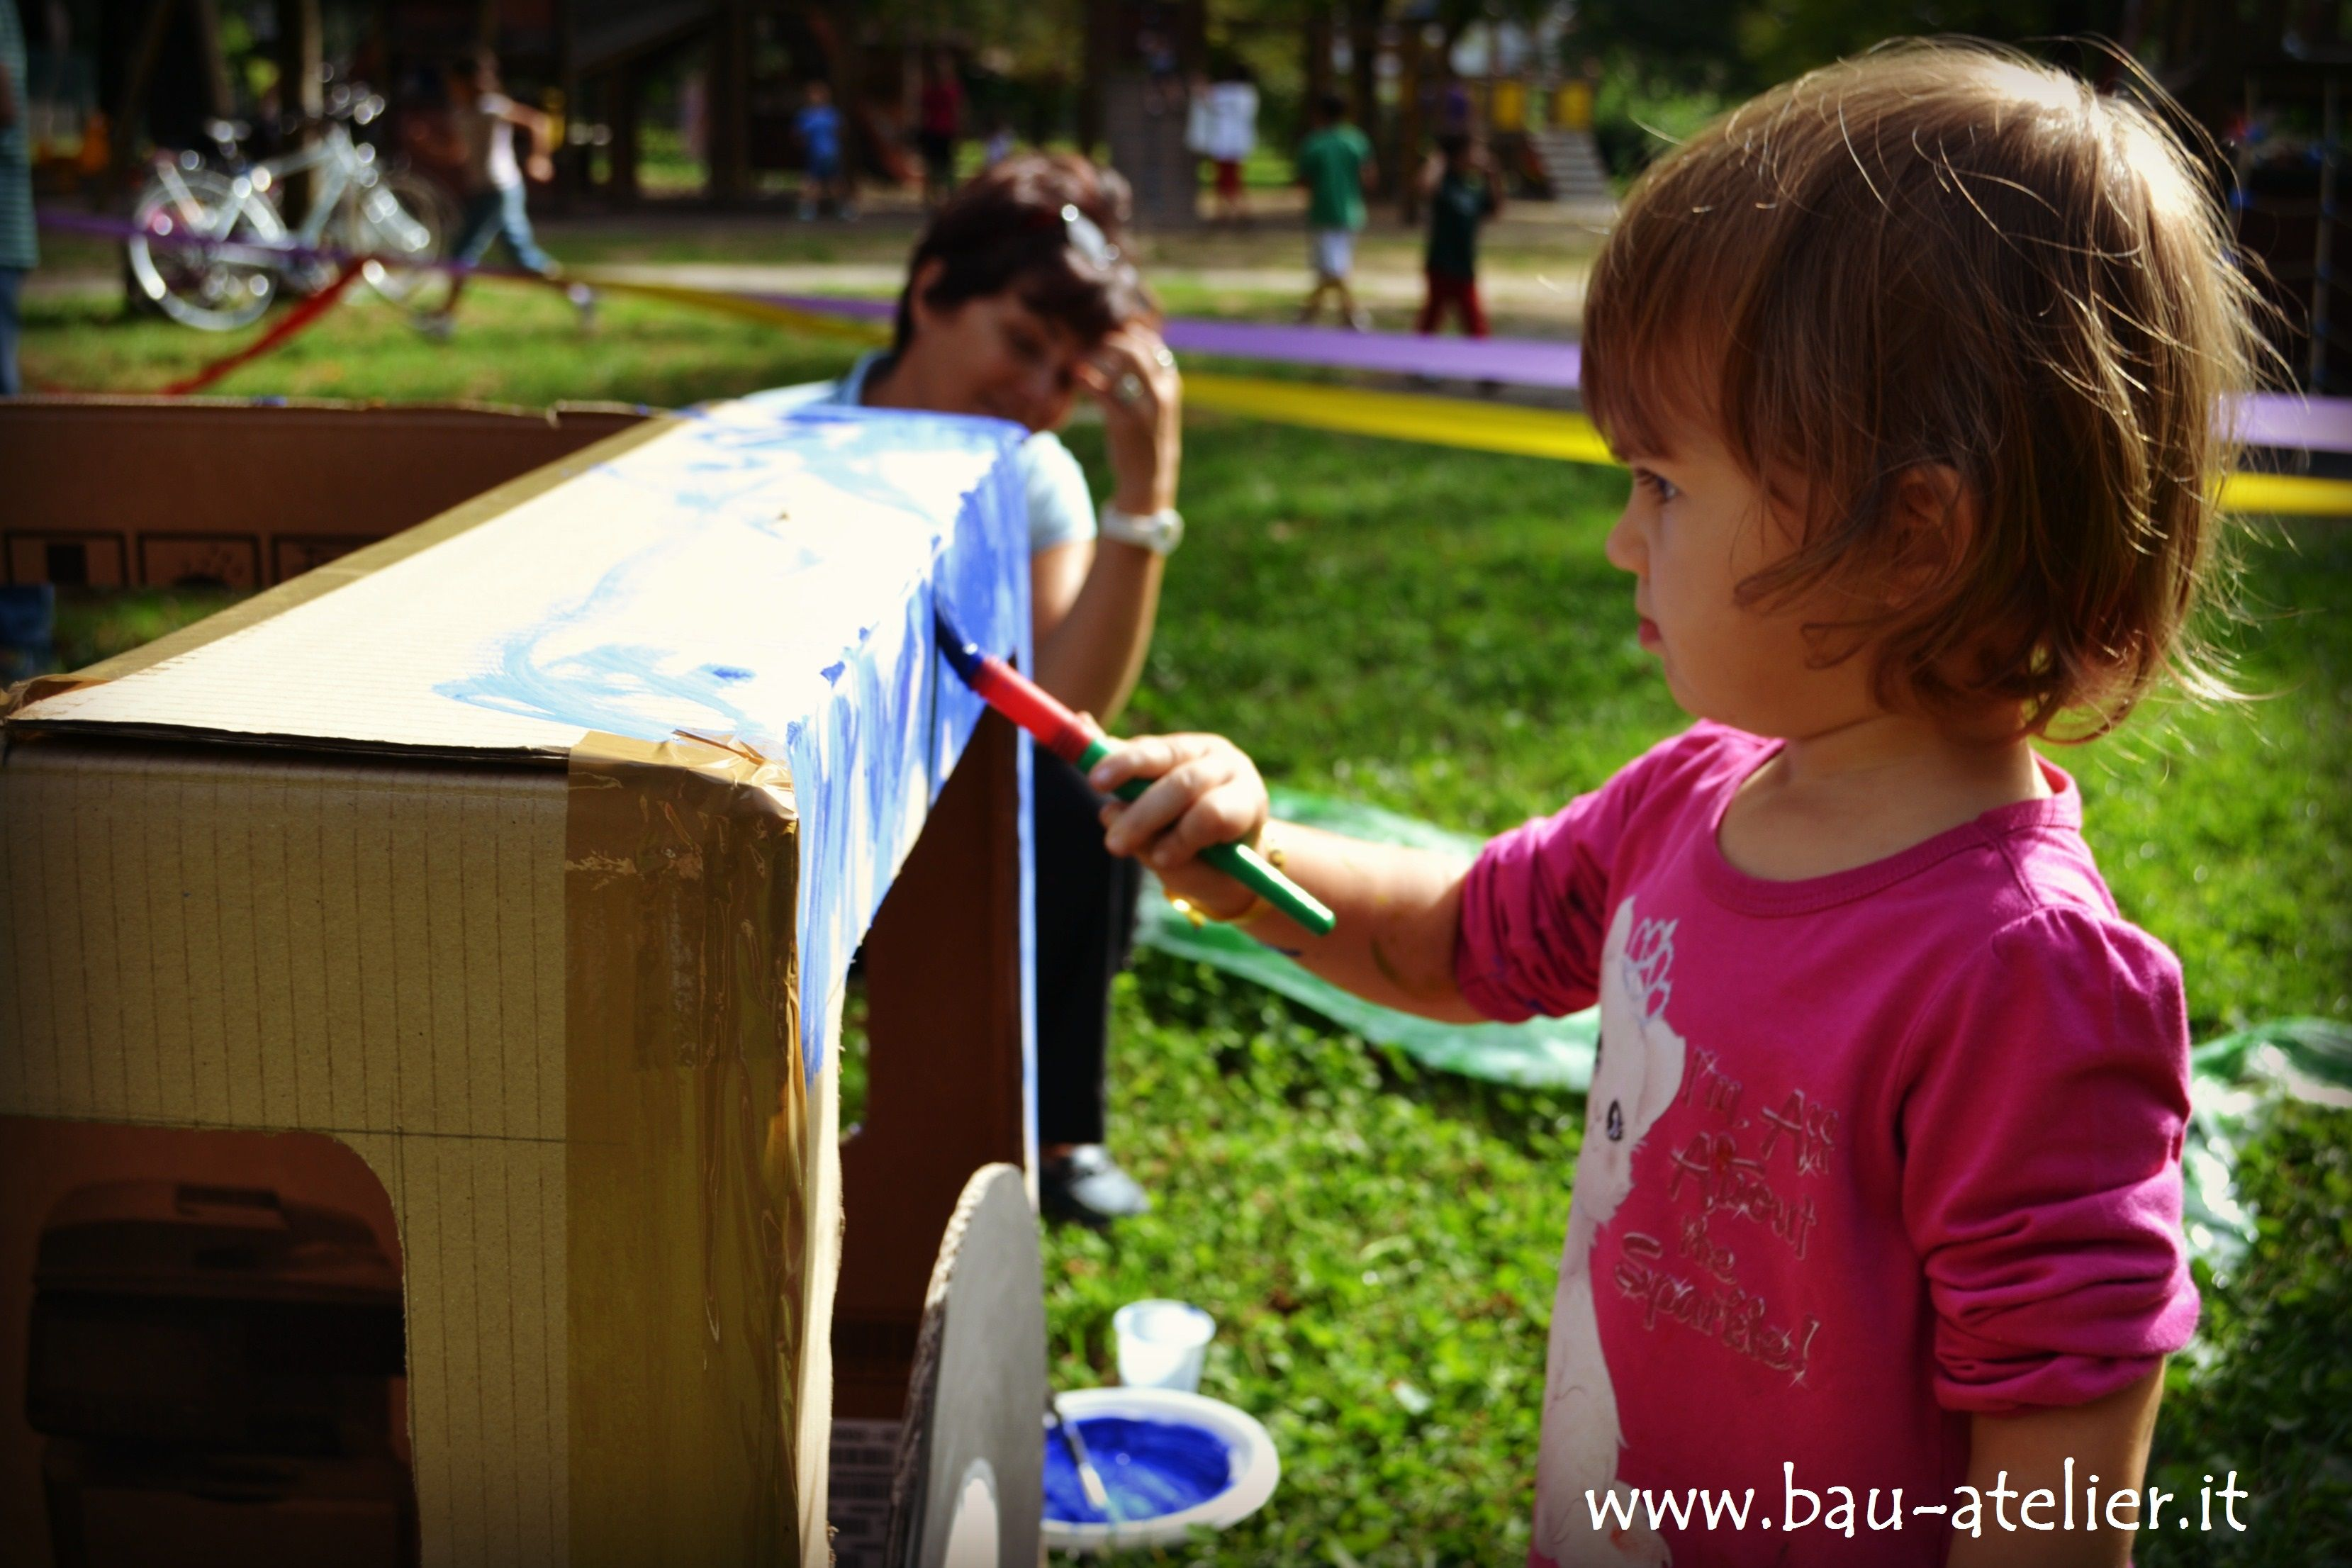 cardboard constructions for kids